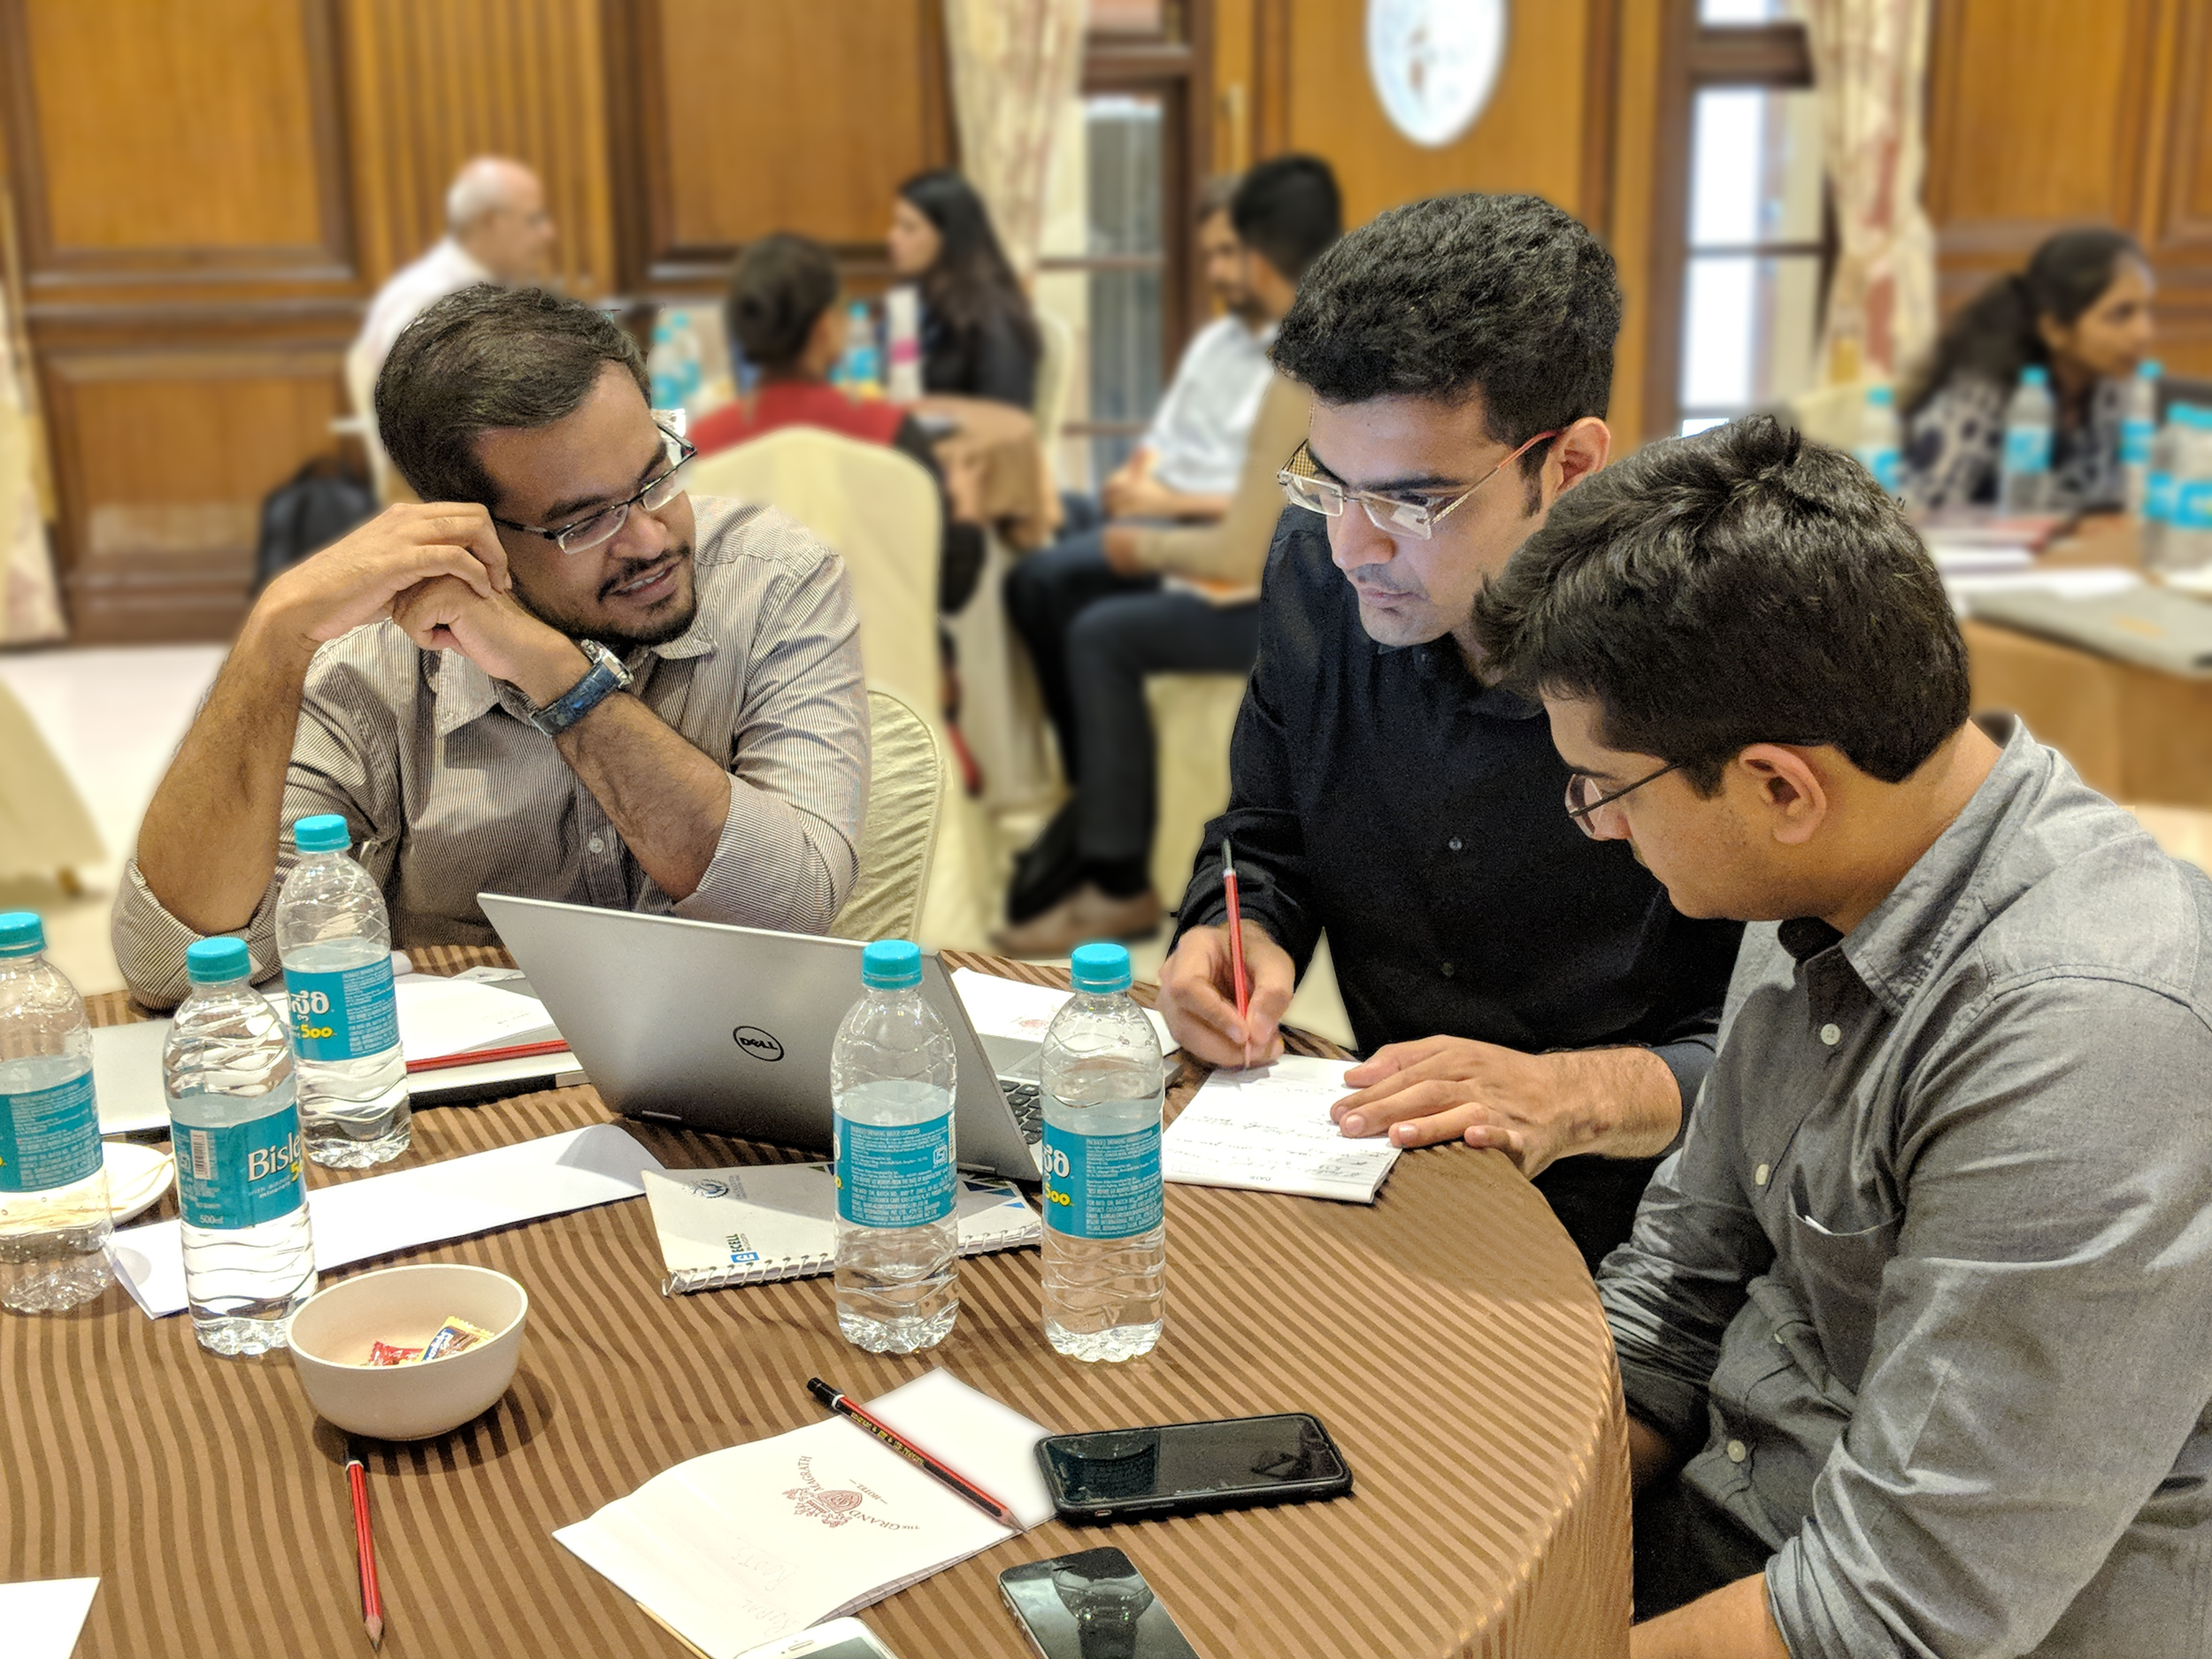 Kunal Bhatia (center) and Shagun Setia (left), work through their financial plan with their mentor, Shreyansh from Ankur Capital.